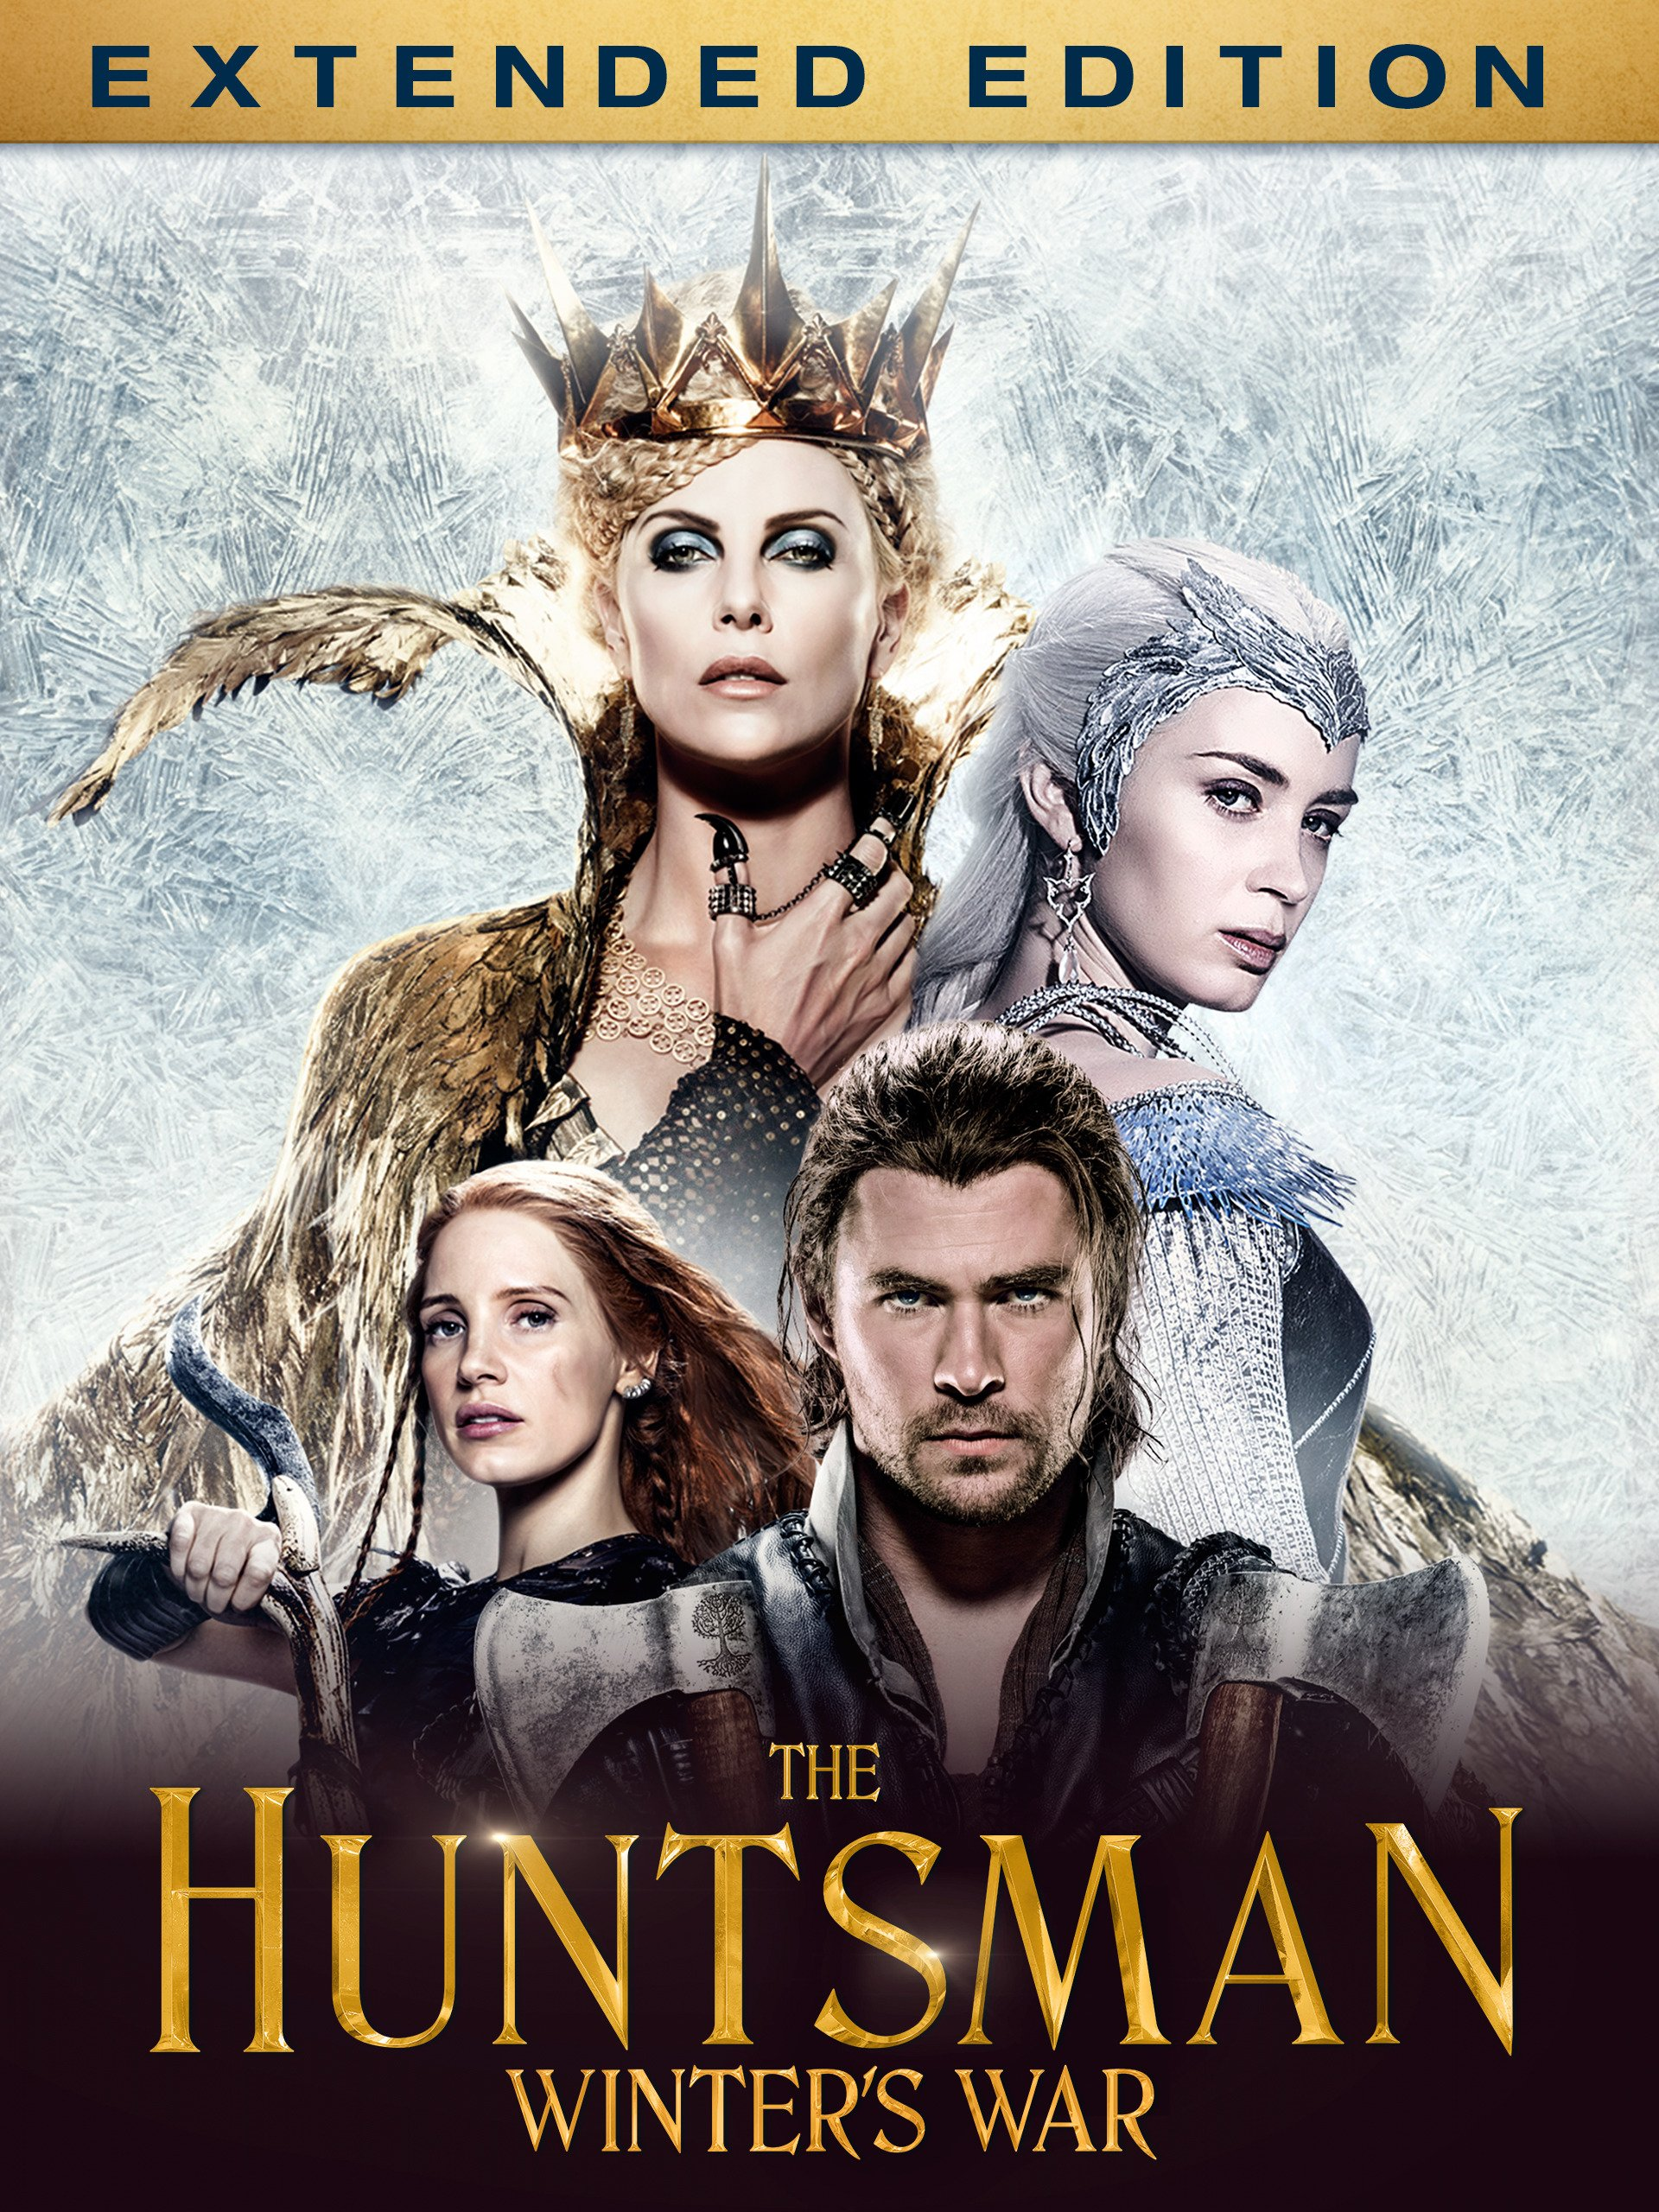 Rights and duties of the huntsman